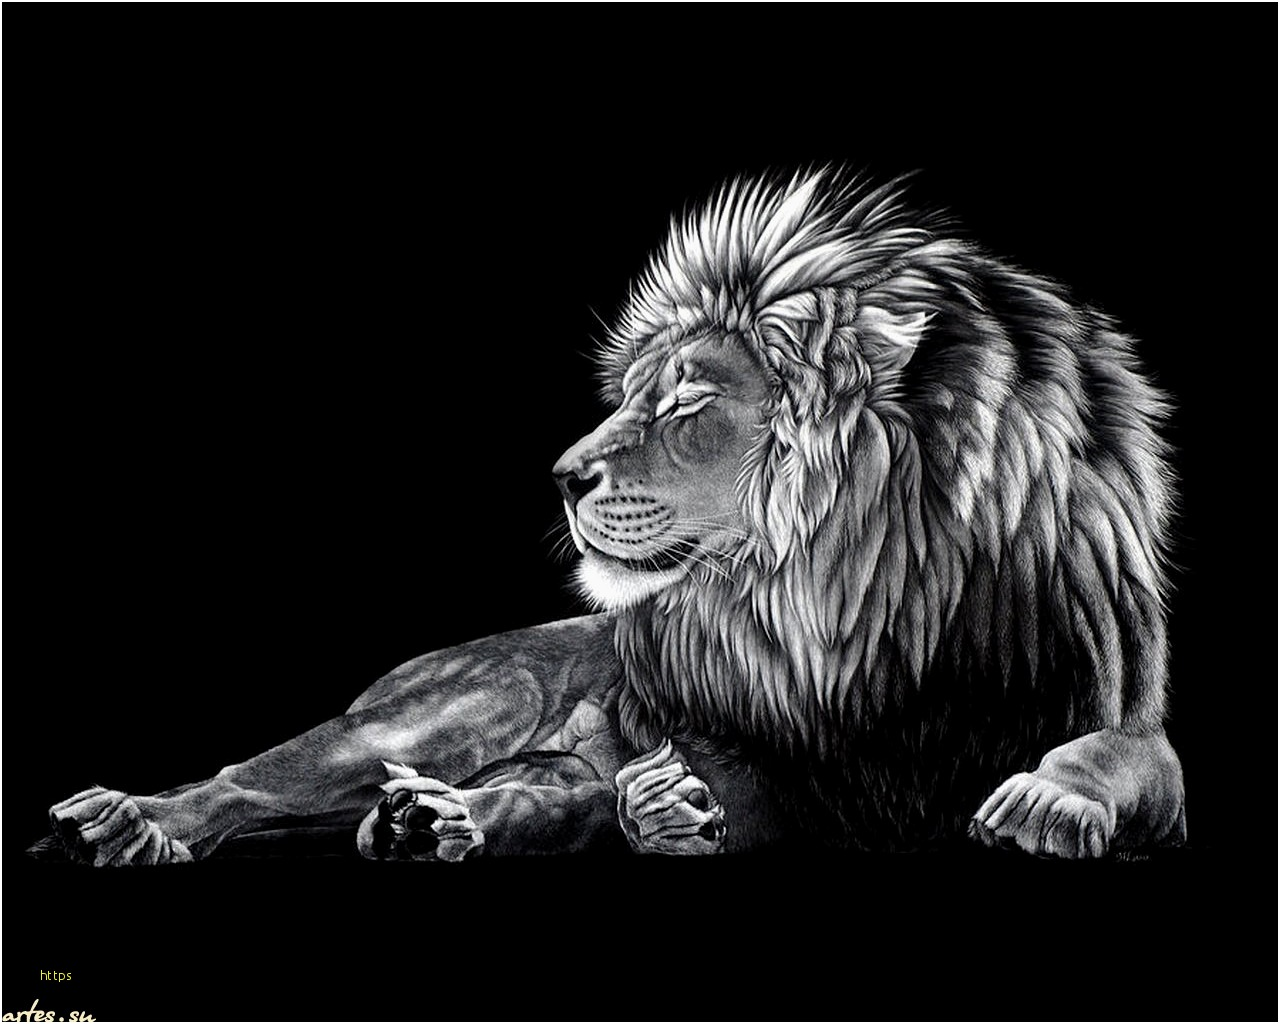 Lion Pics Black And White Posted By Christopher Walker You can also upload and share your favorite lion wallpapers. lion pics black and white posted by